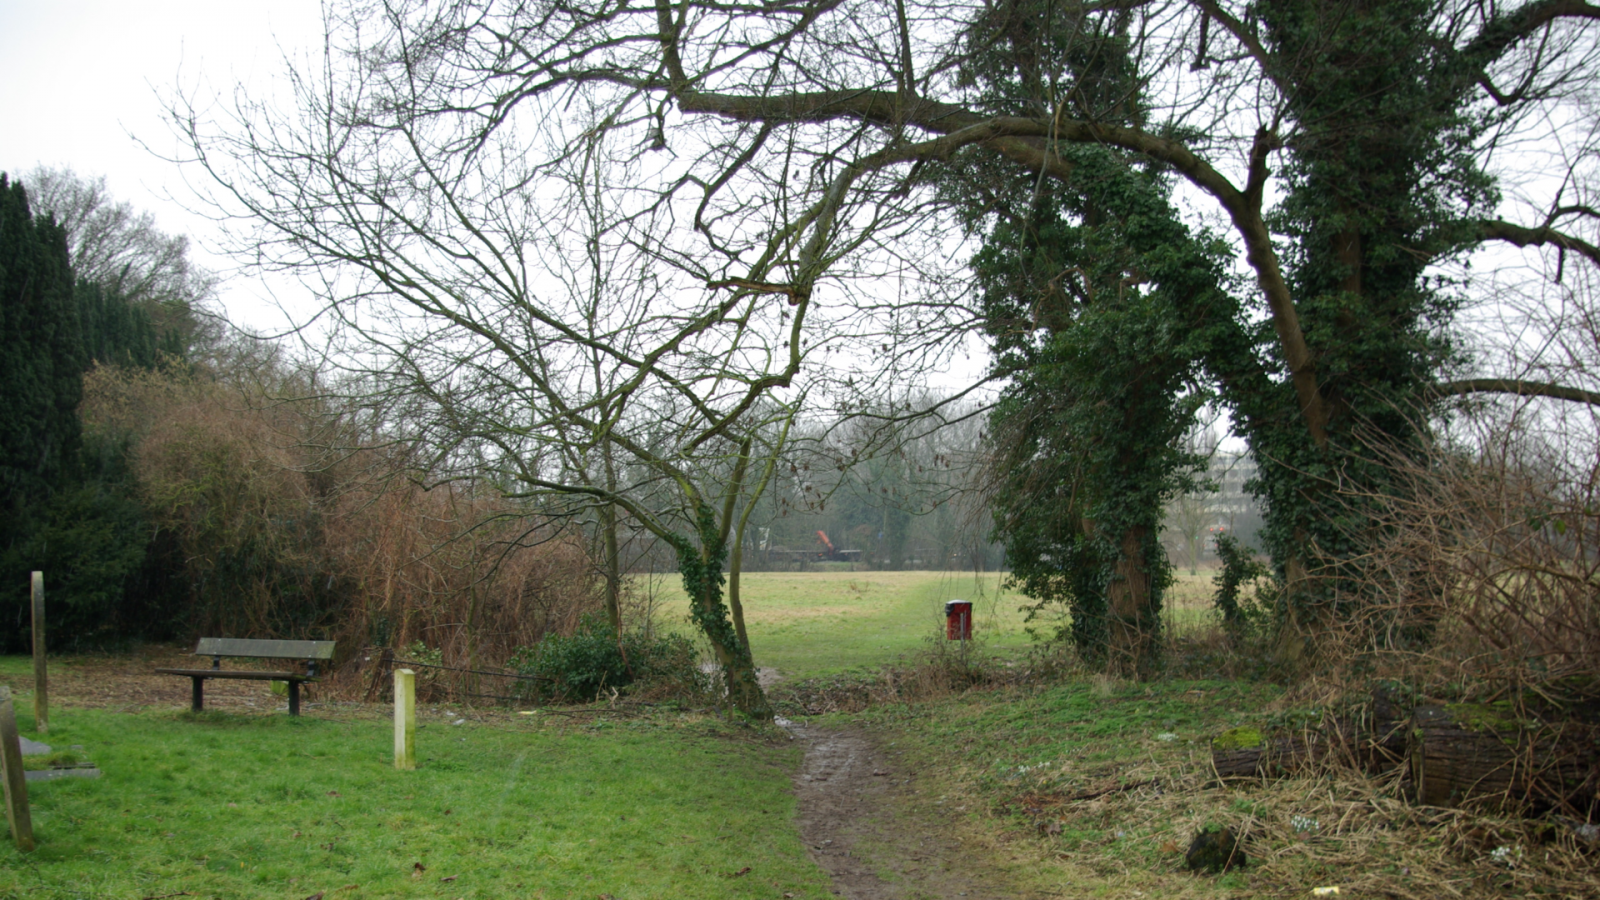 Picture of a path through Church Meadows